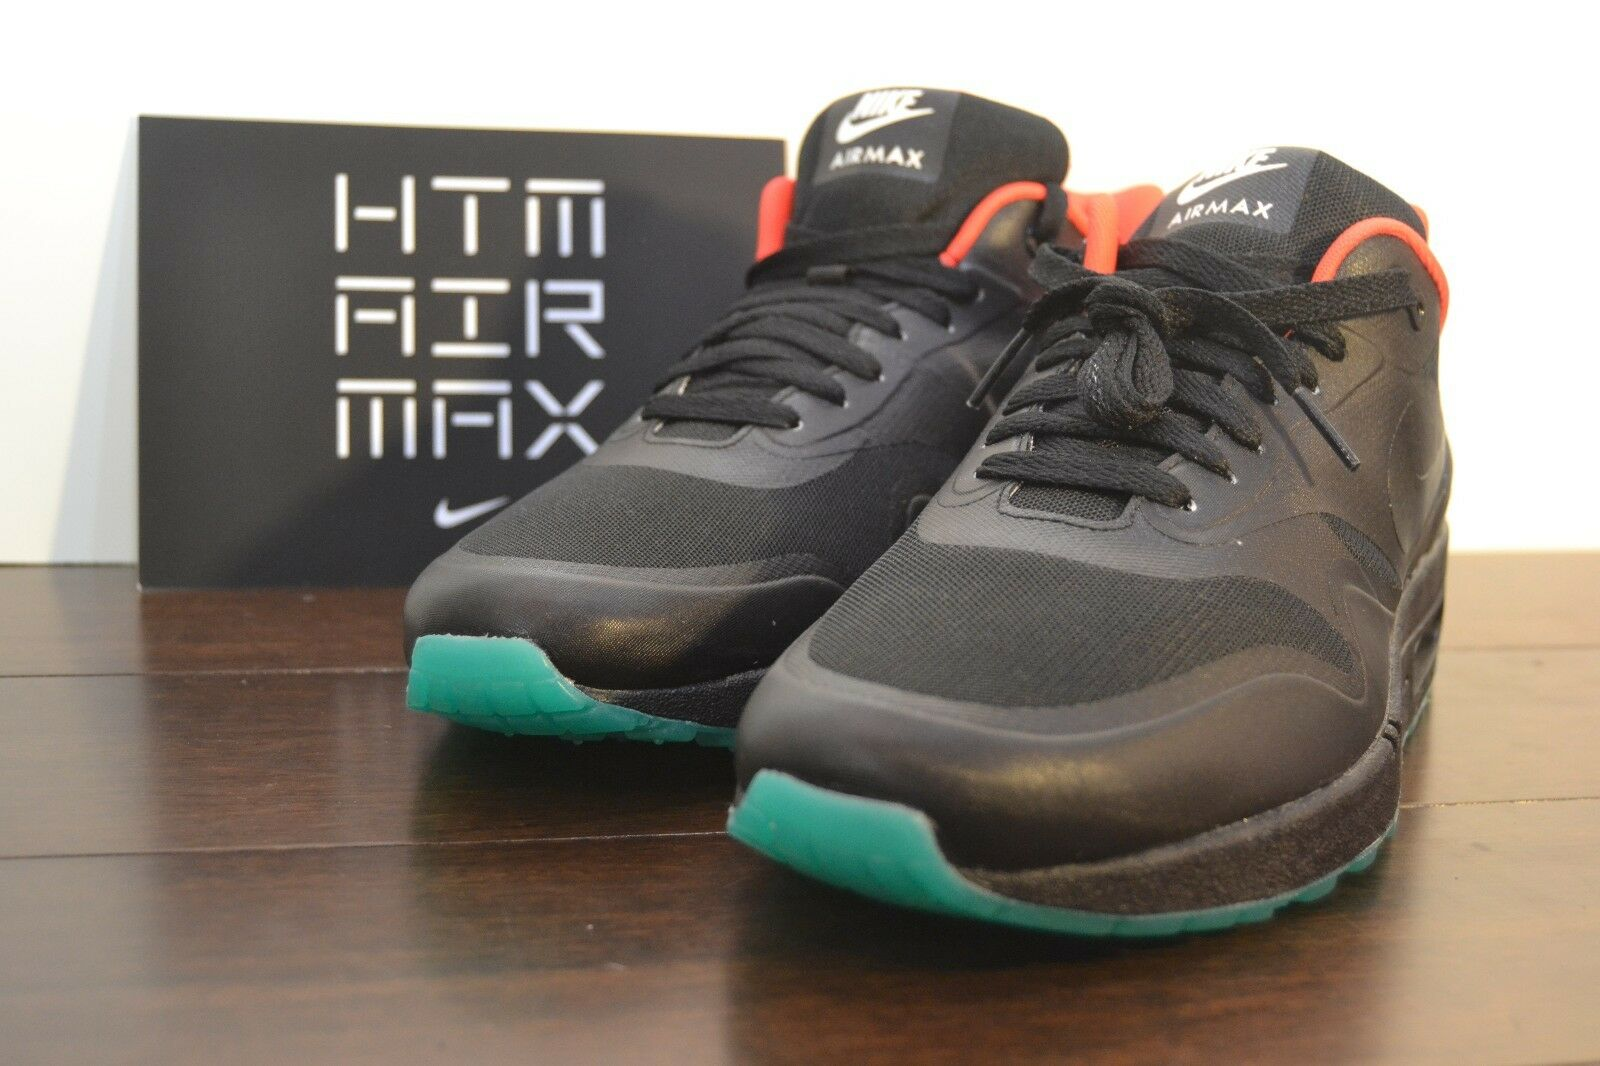 Nike ID Air Max 1 Black Solar Red 874605 991 Size 11 NEW DS Mark Parker HTM